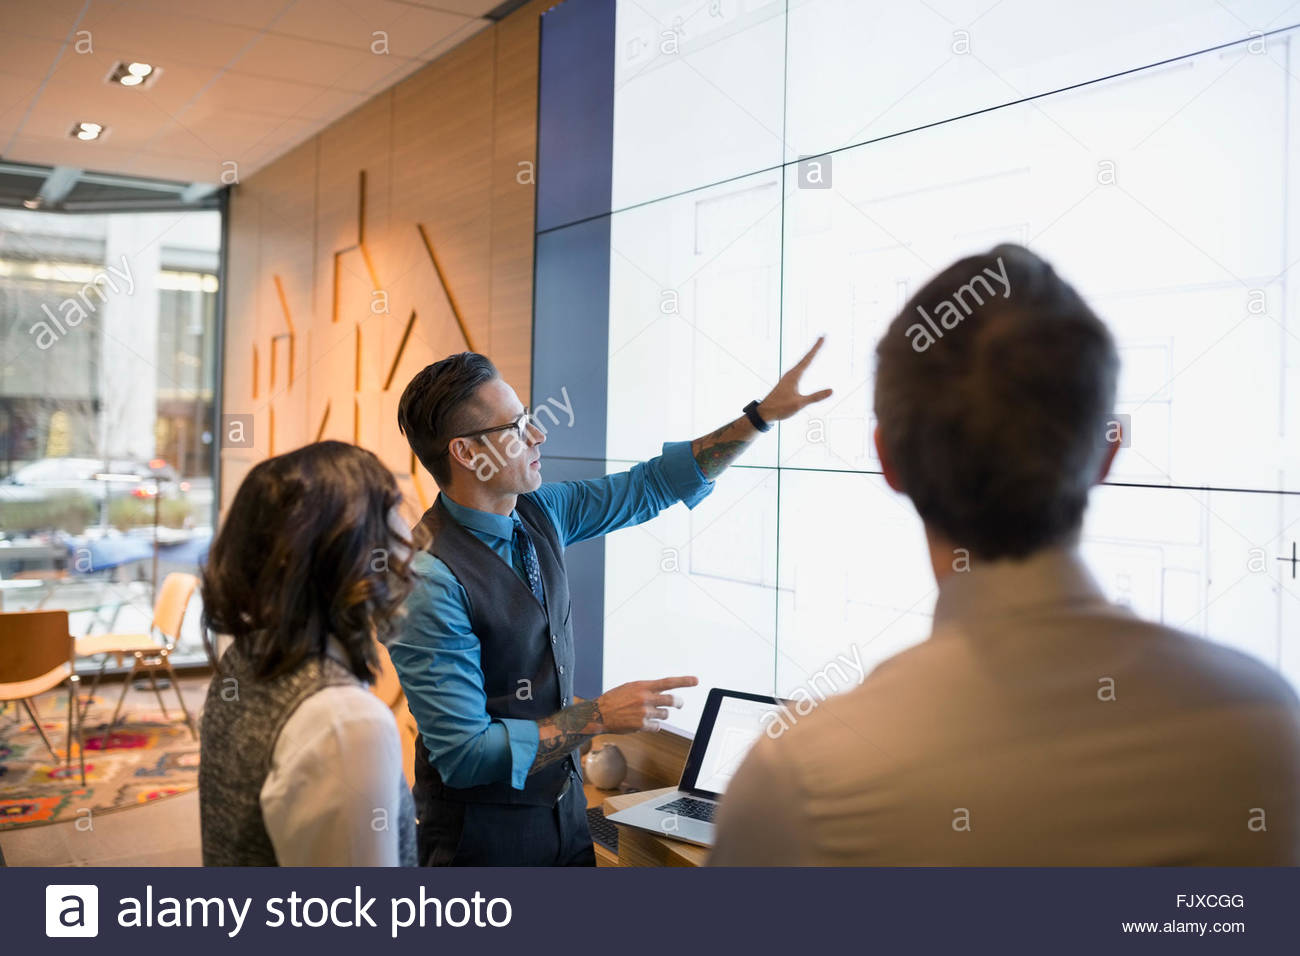 Architects discussing blueprints on projection screen conference room - Stock Image